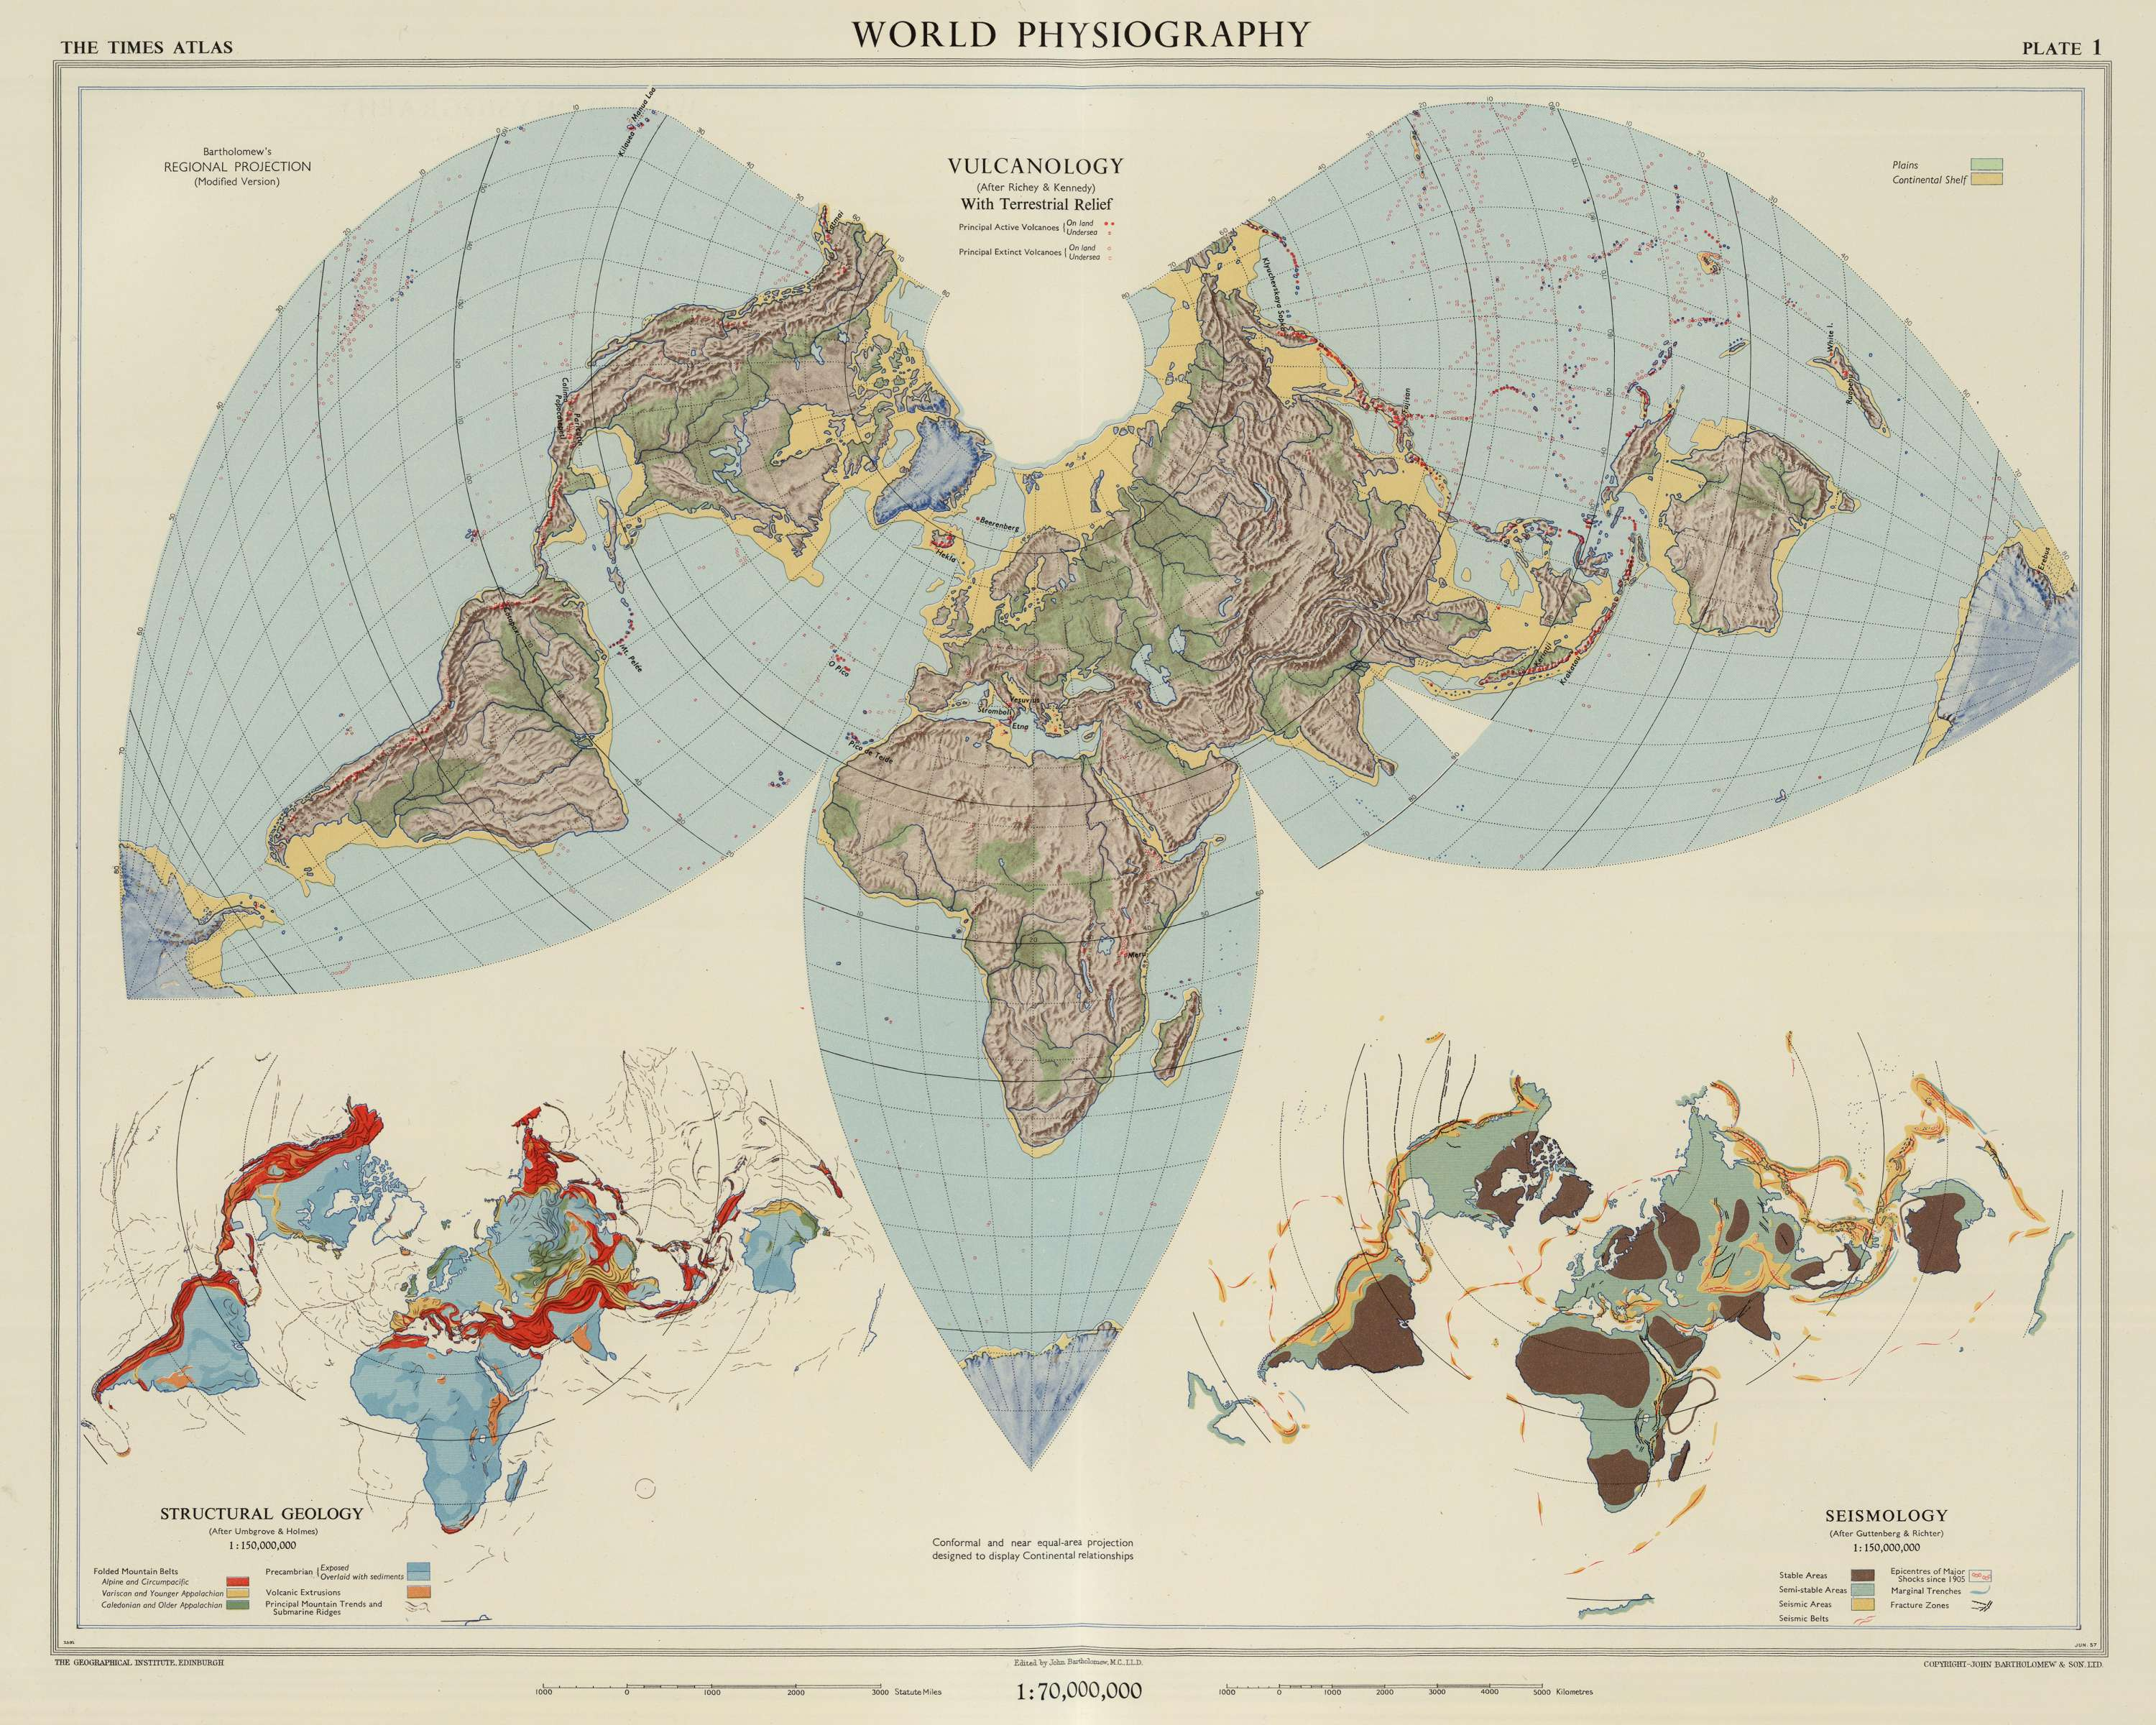 World Physiography